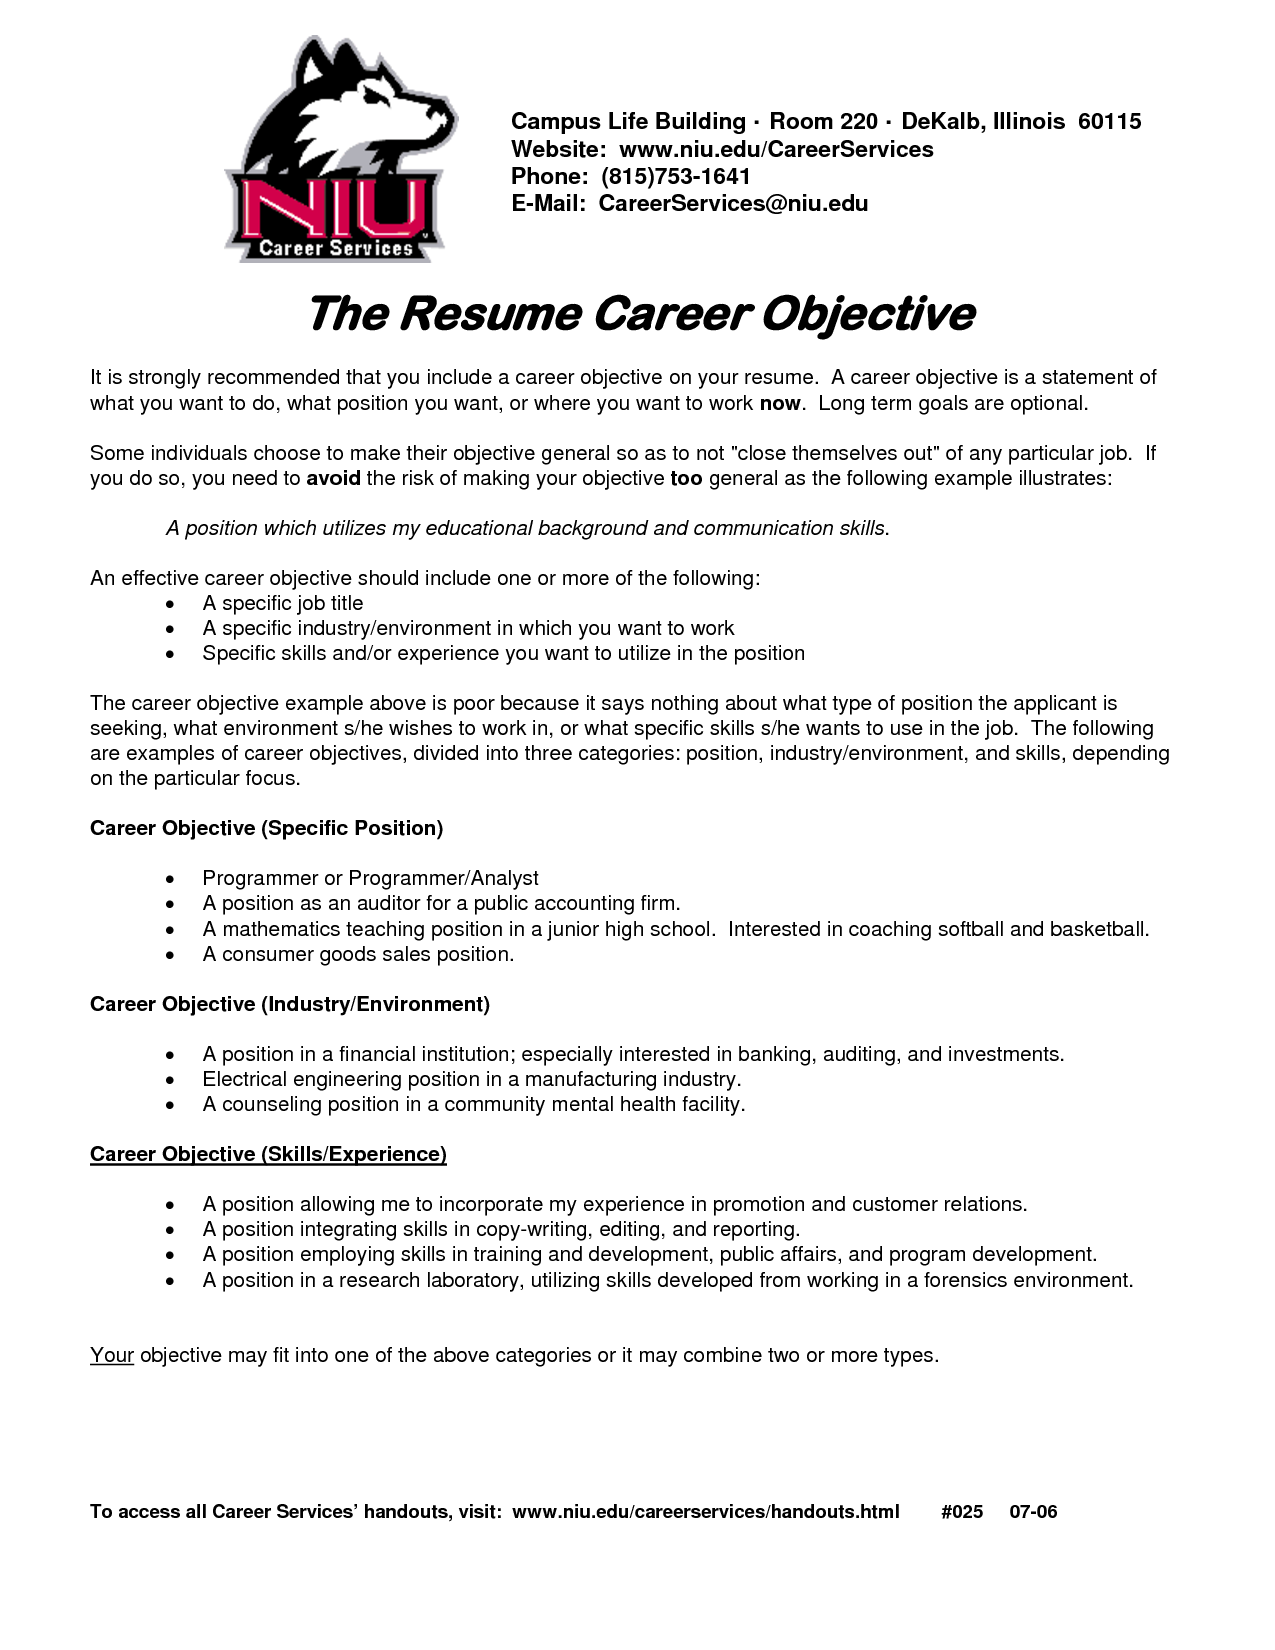 Resume Job Objective Examples Httpswww.googlesearchqobjective Resume  Resume .